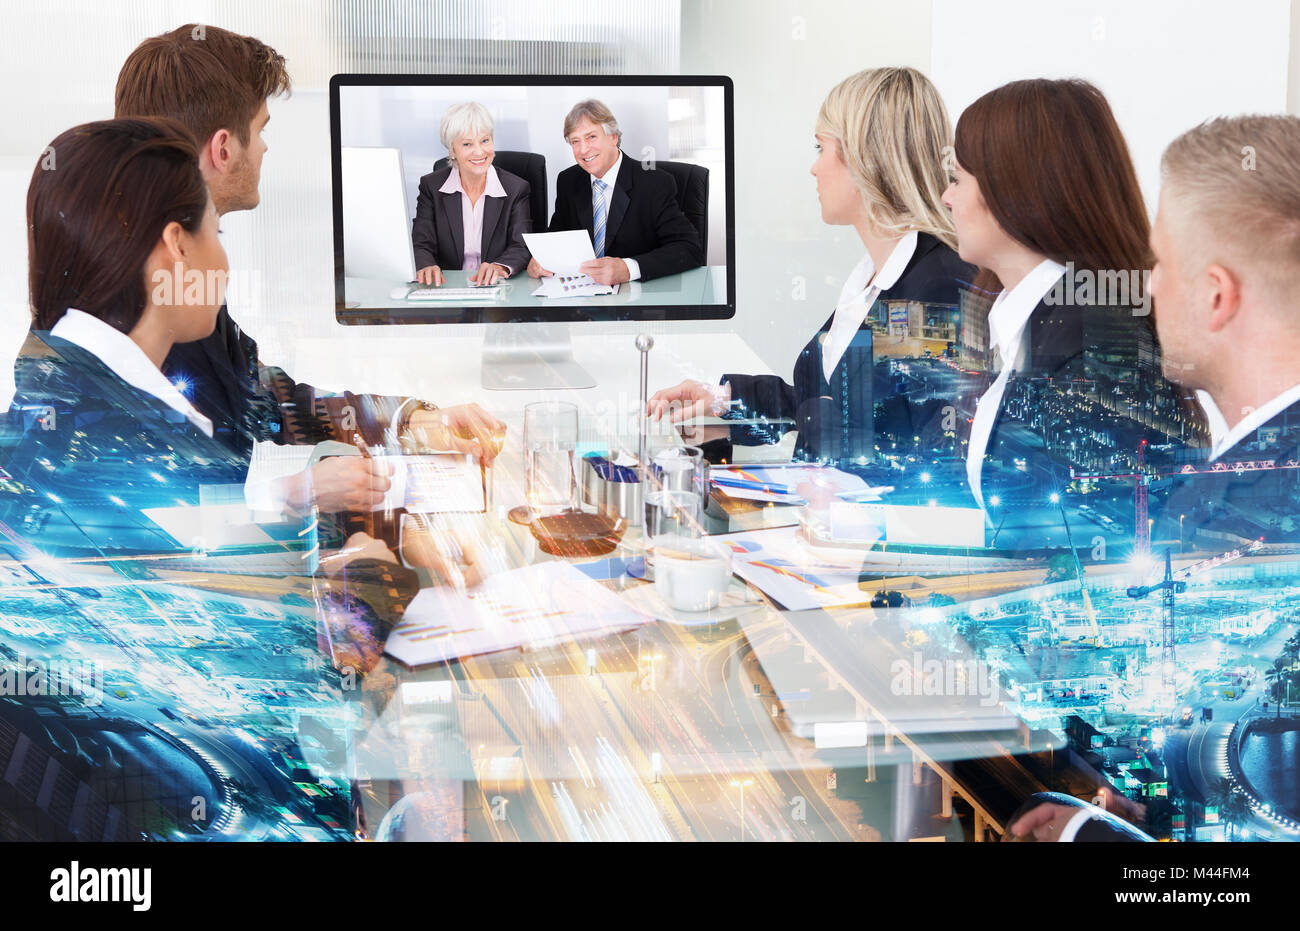 Double exposure of multiethnic business people having conference call with partners over illuminated city background - Stock Image